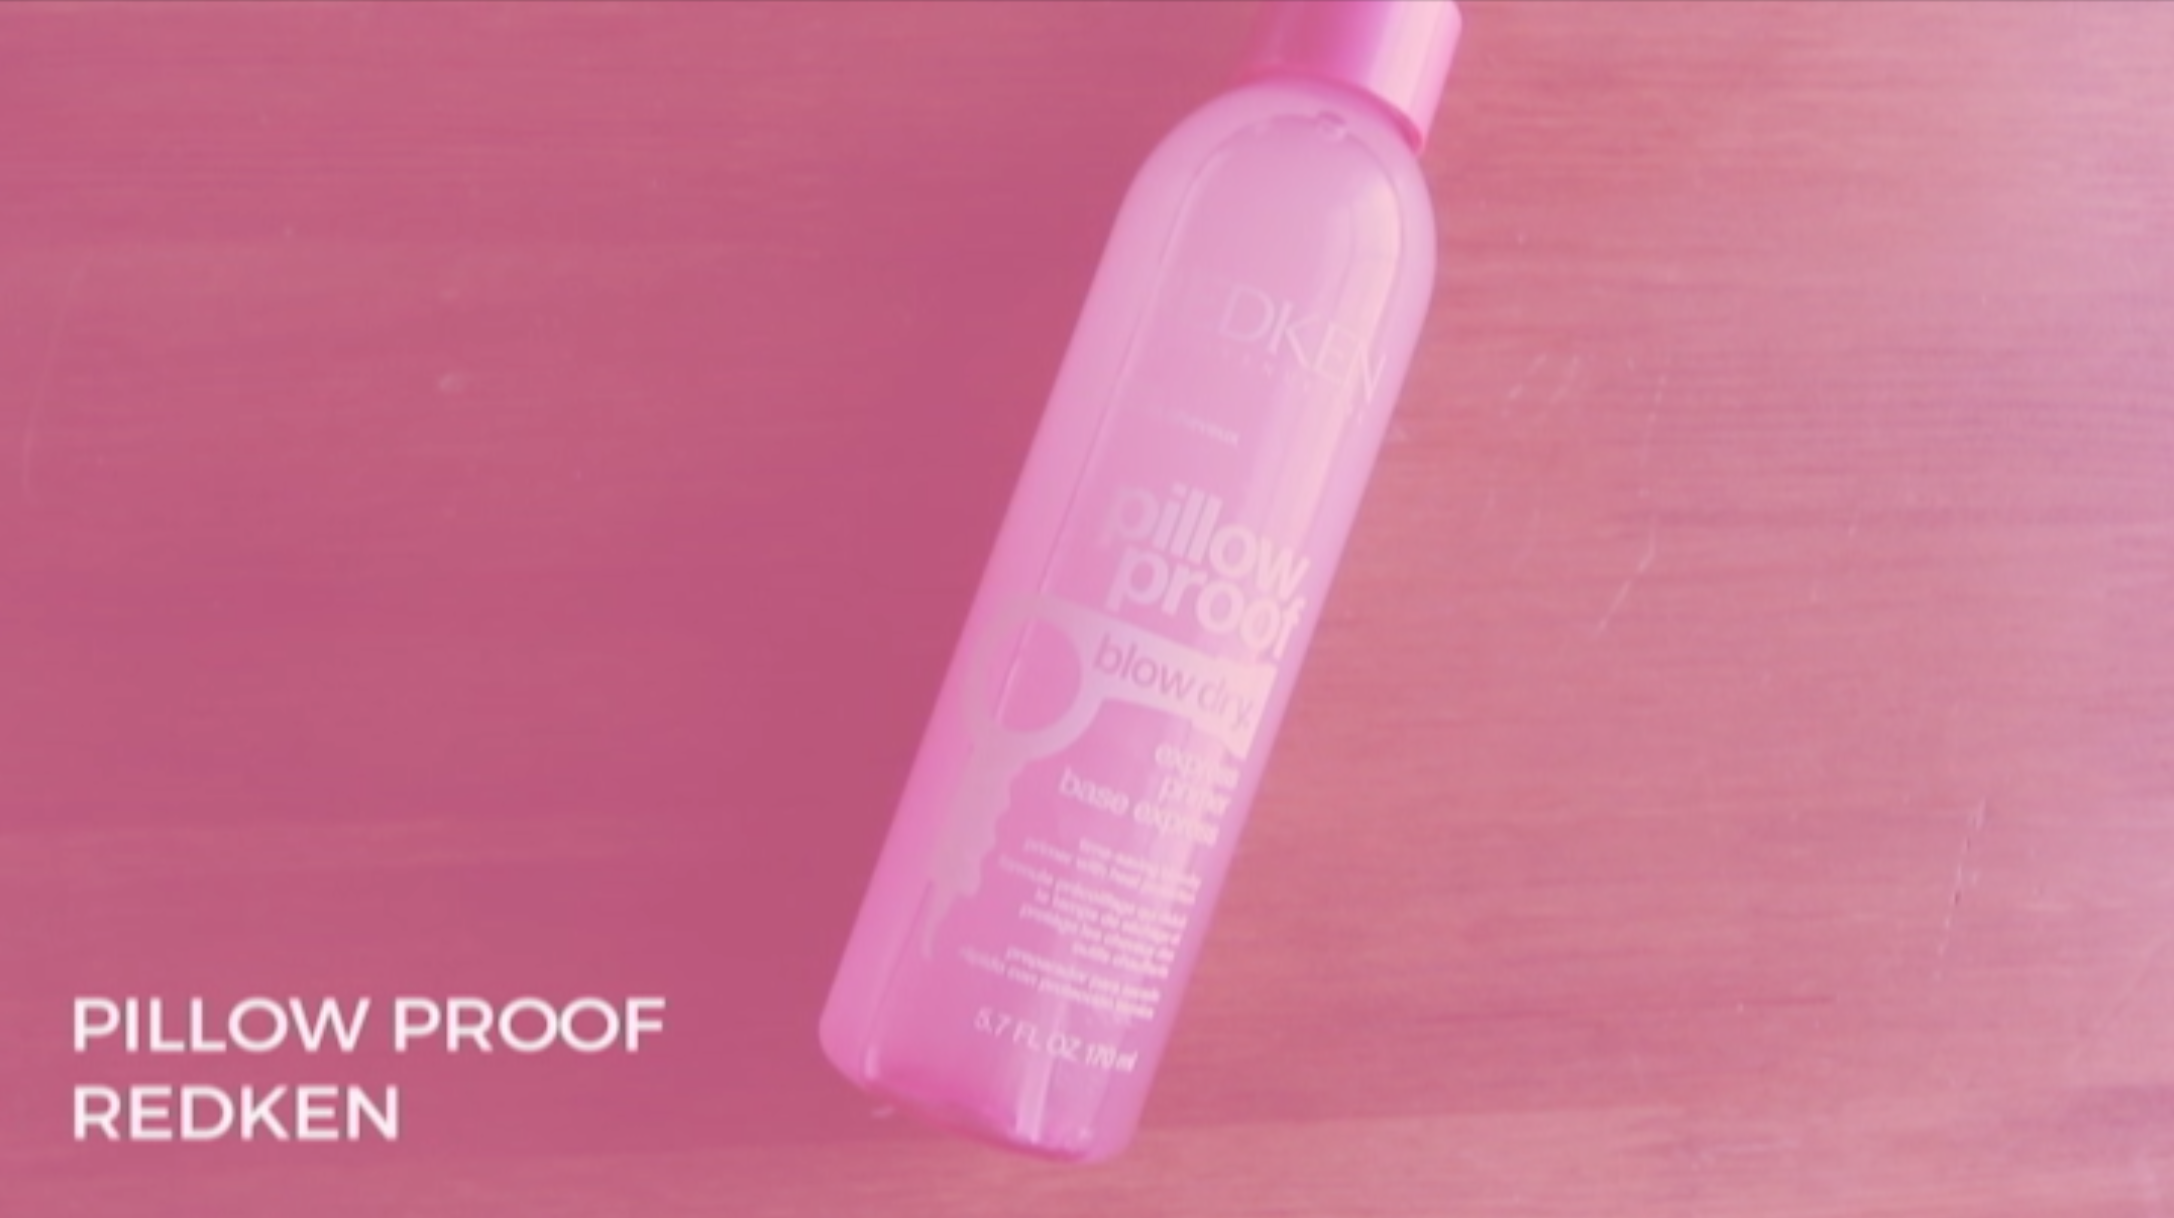 Pillow Proof thermal protectant by Redken